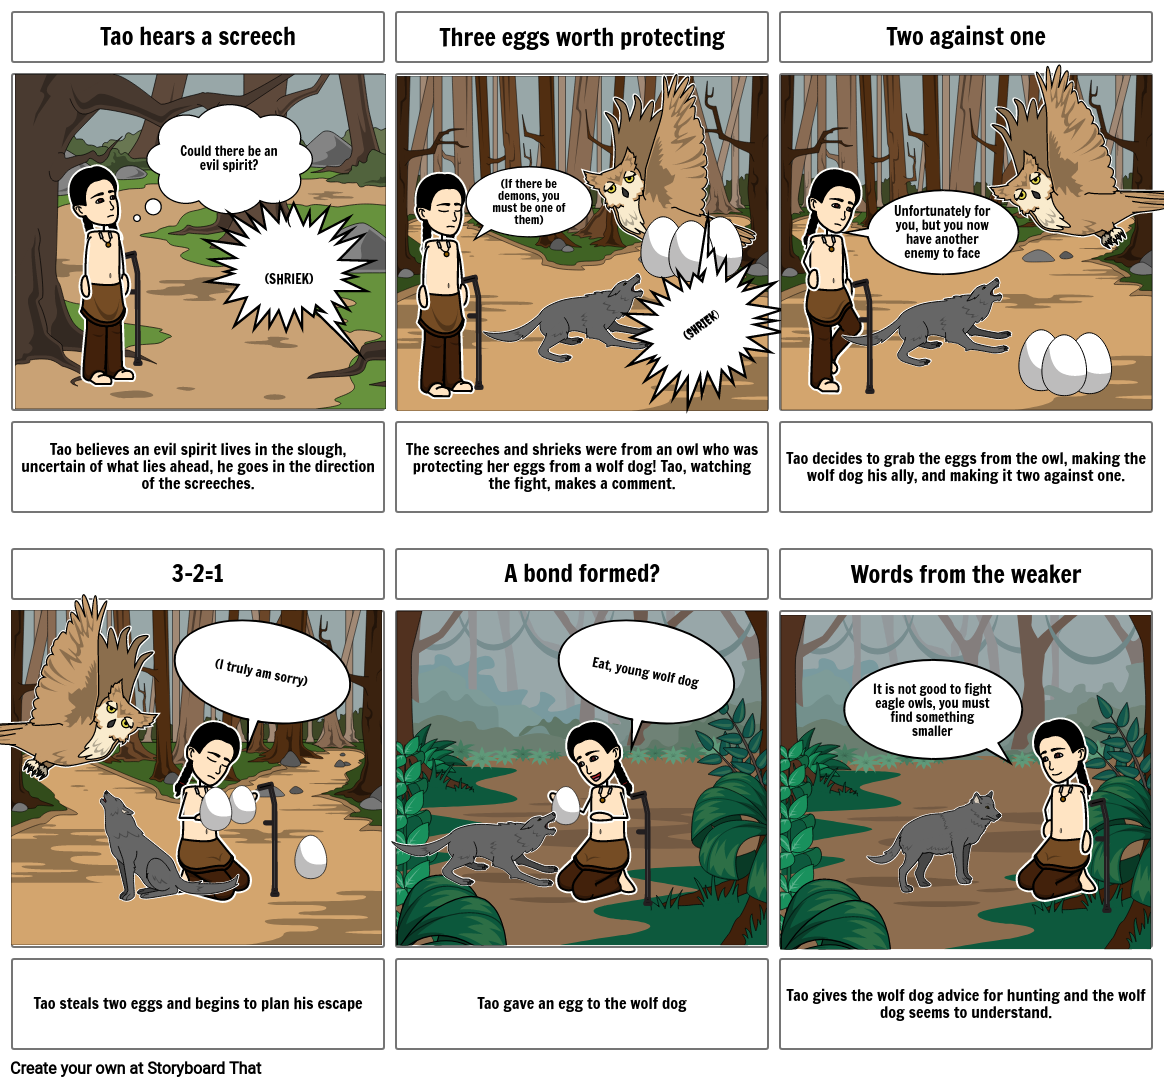 Boy of the painted cave Chapter 3 story board